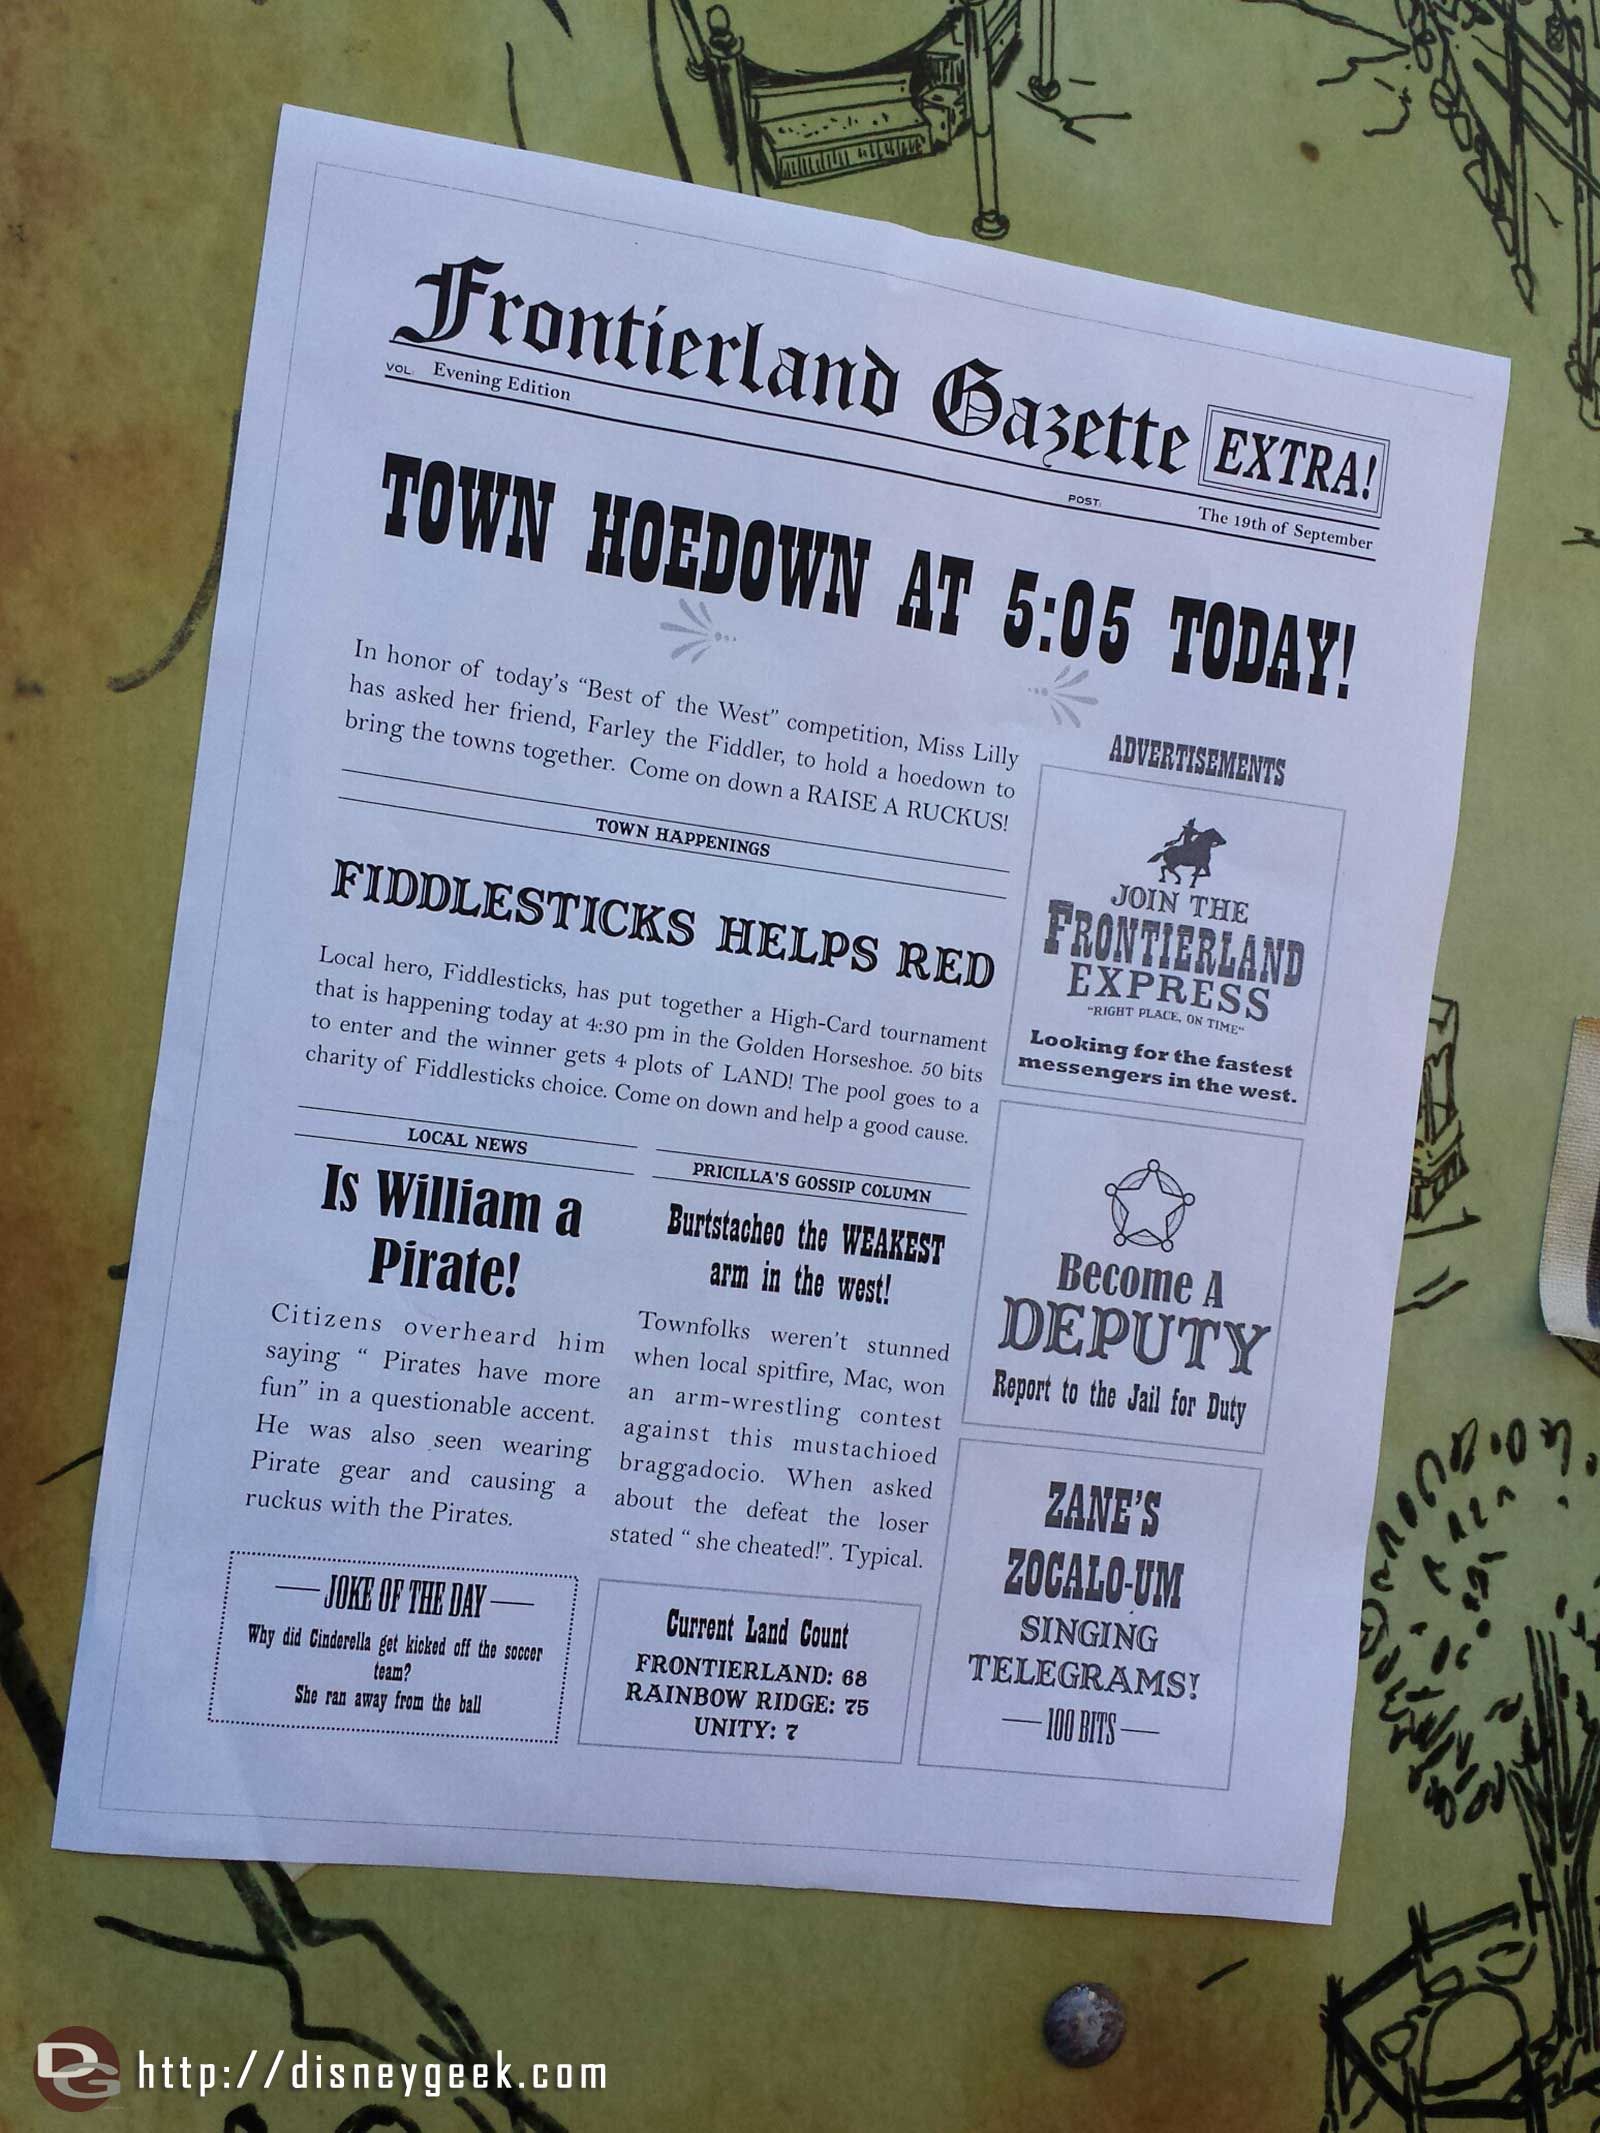 Frontierland Gazette posted around with some events Legends of Frontierland, note it was announced today it will run through the 27th